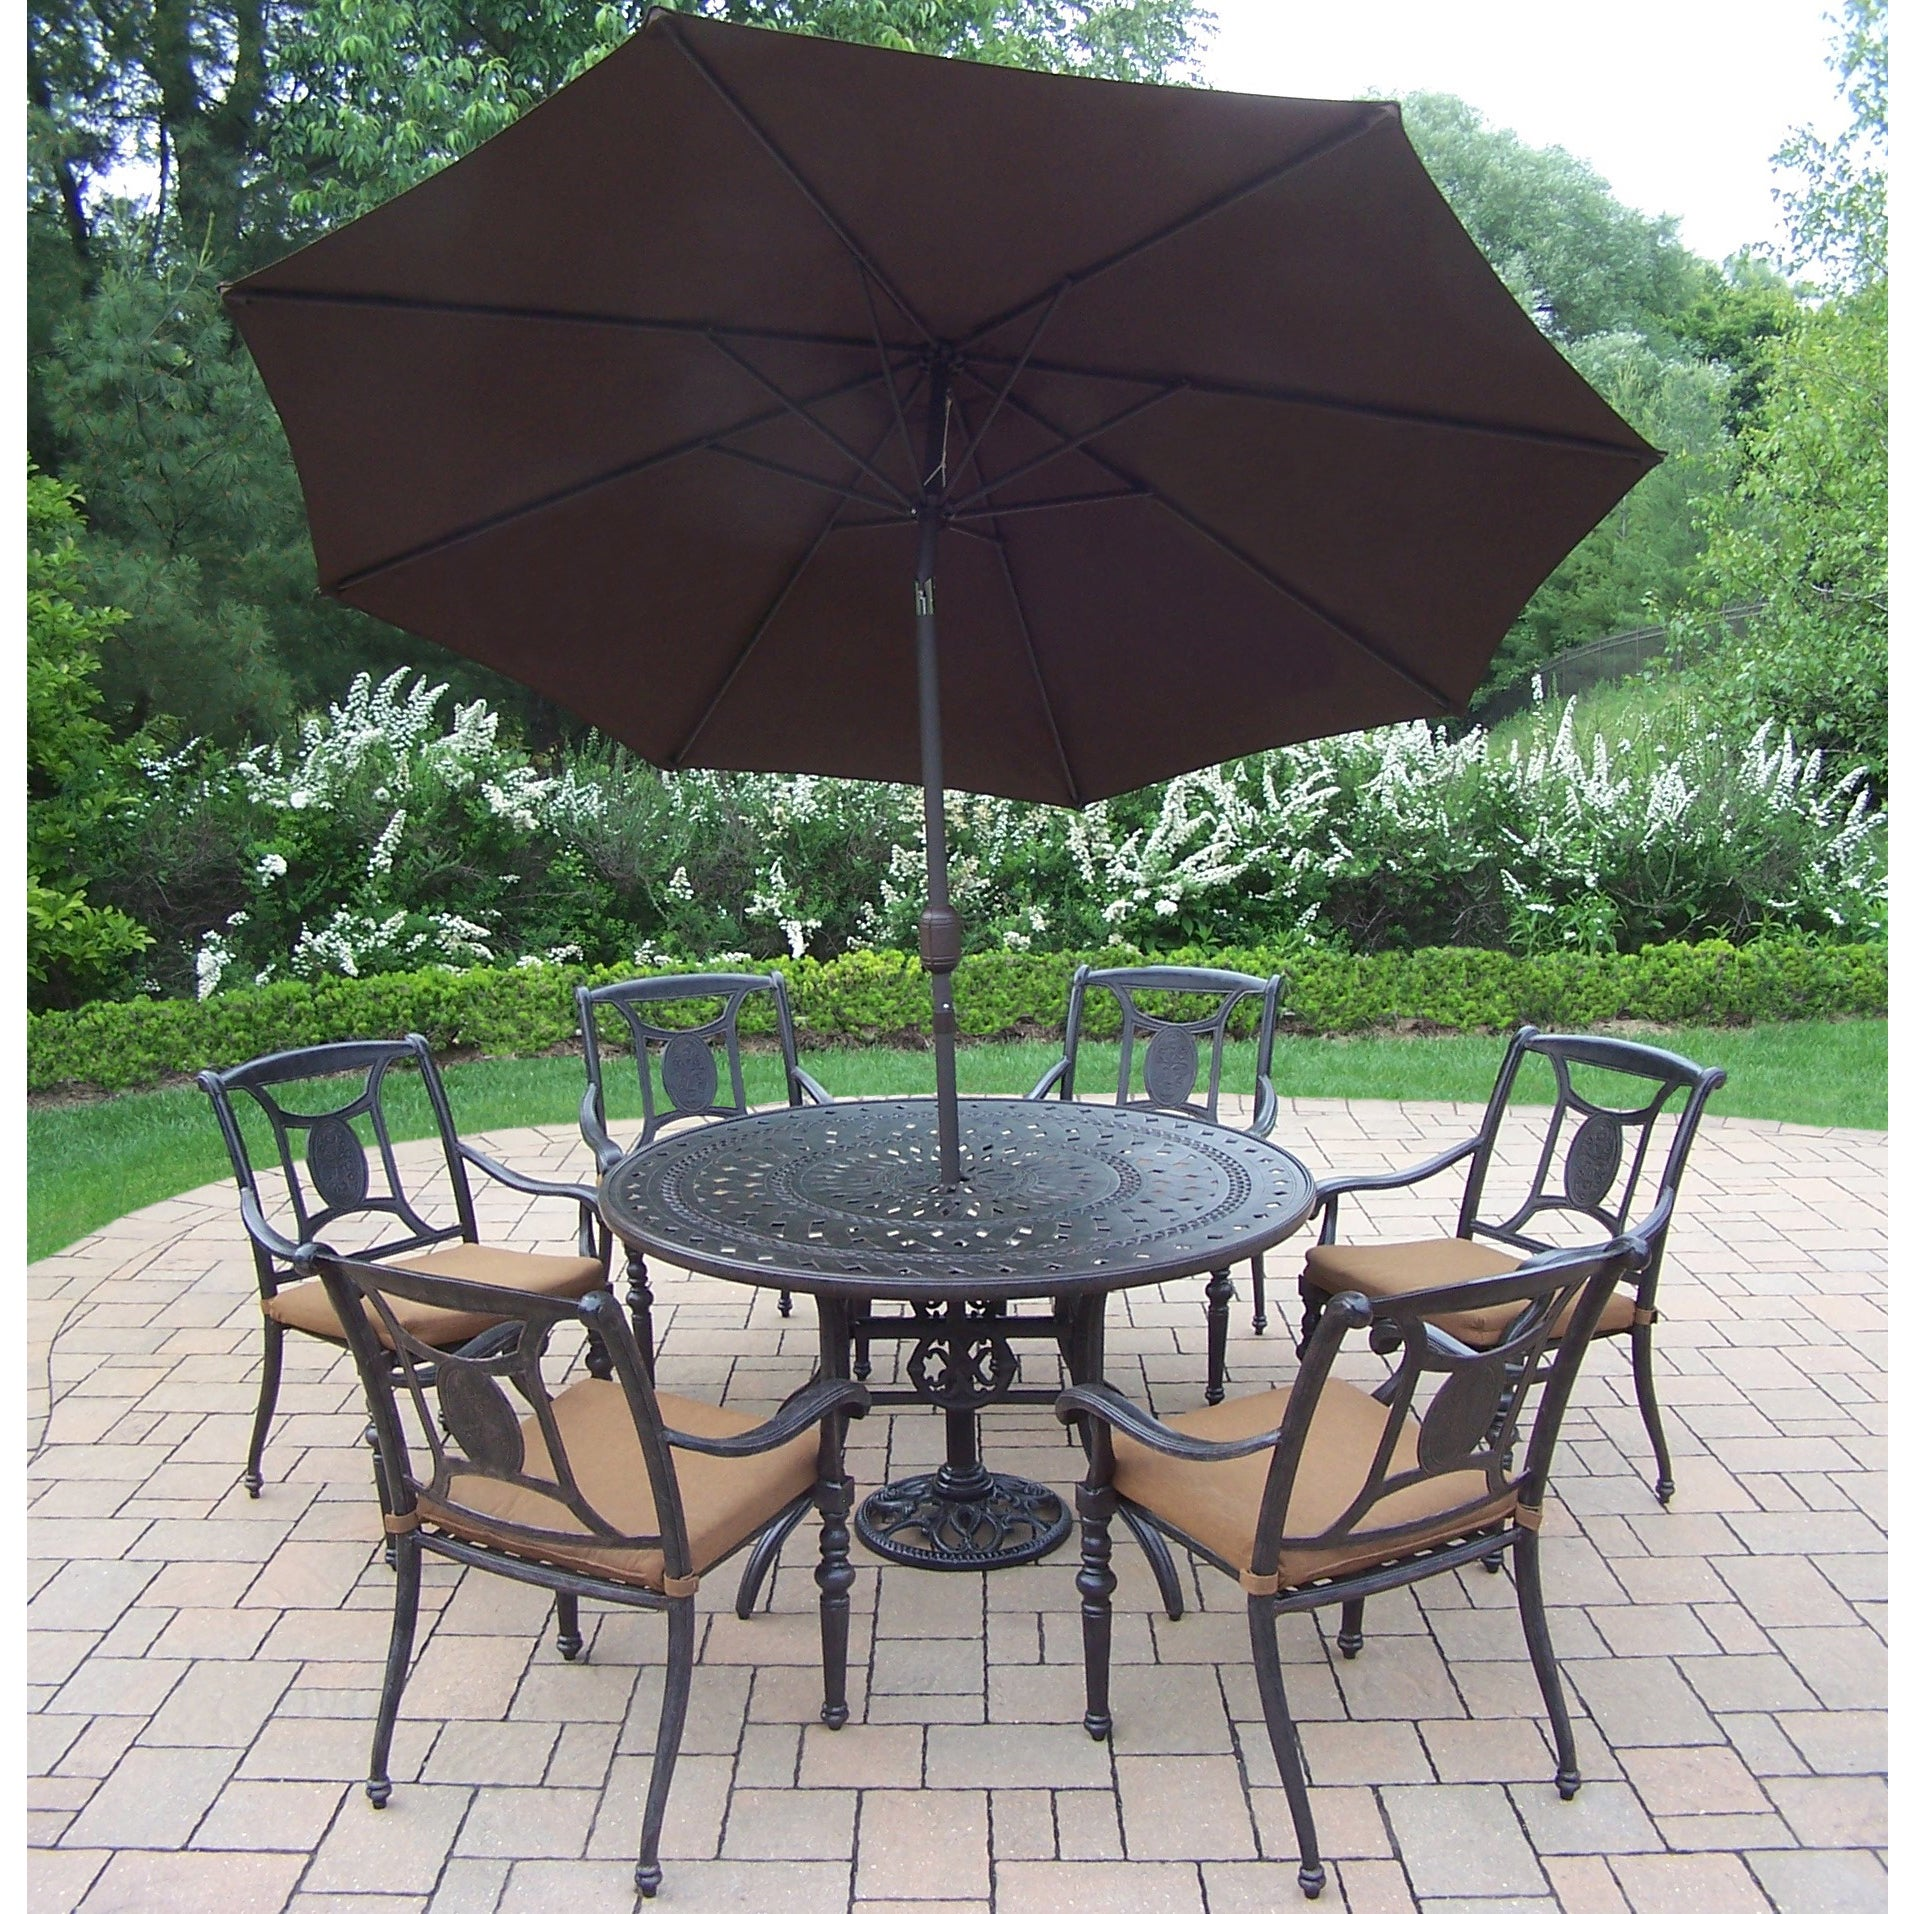 9 Pc Dining Set, with Table, 6 Stackable Chairs, Umbrella and Stand (9 Pc Dining Set Table, 6 Chairs, Umbrella w/ Stand)